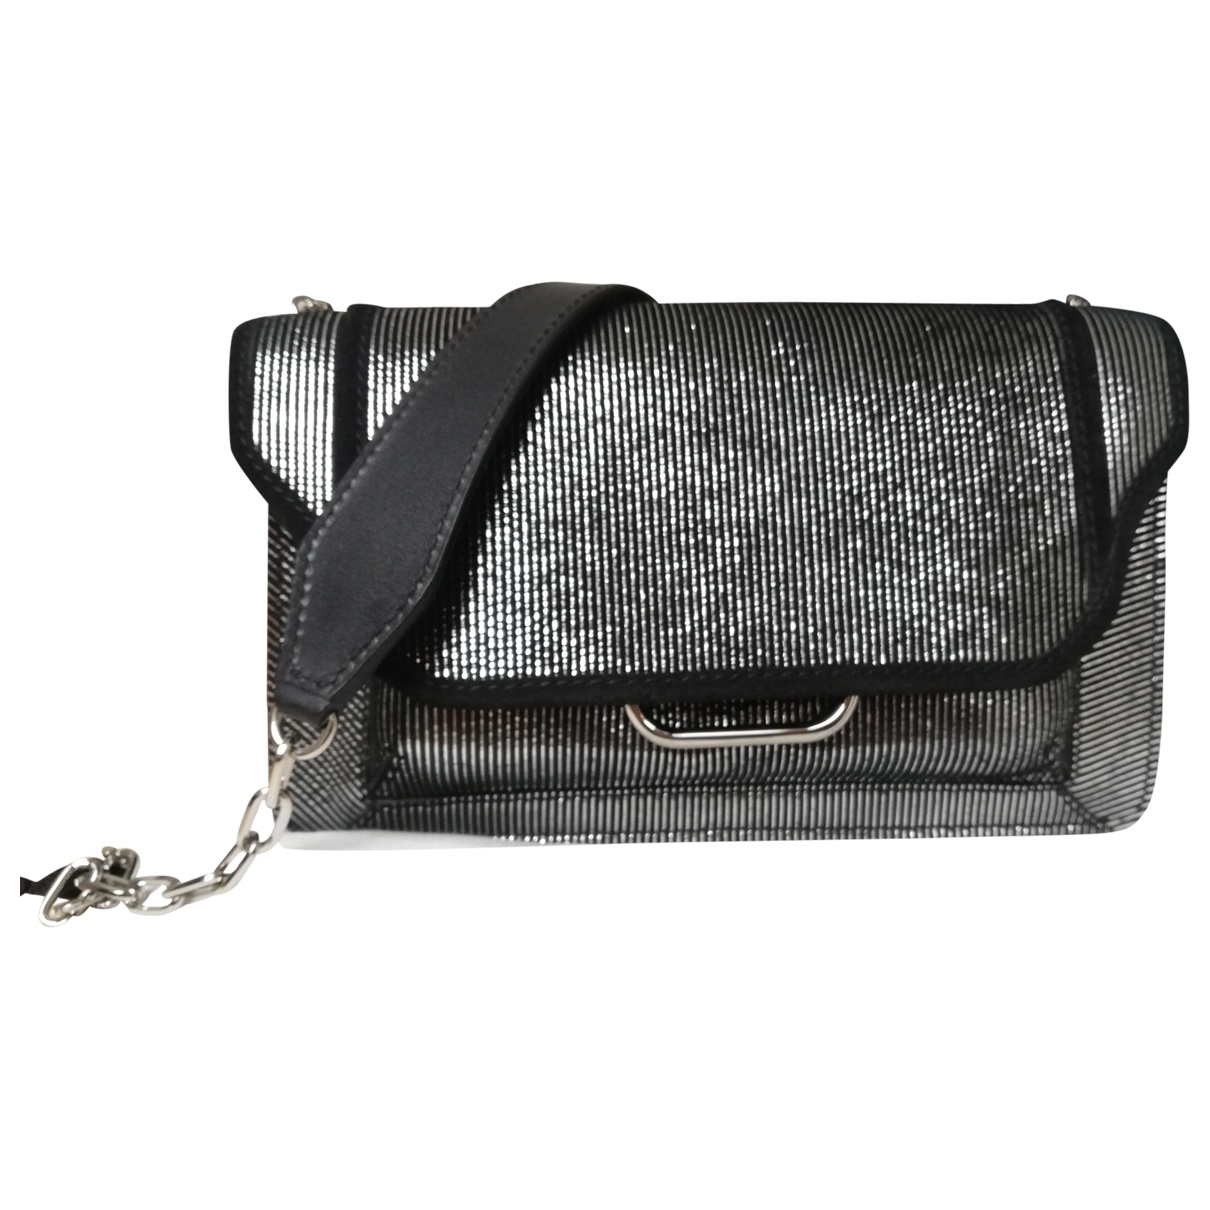 Isabel Marant \N Black Leather handbag for Women \N